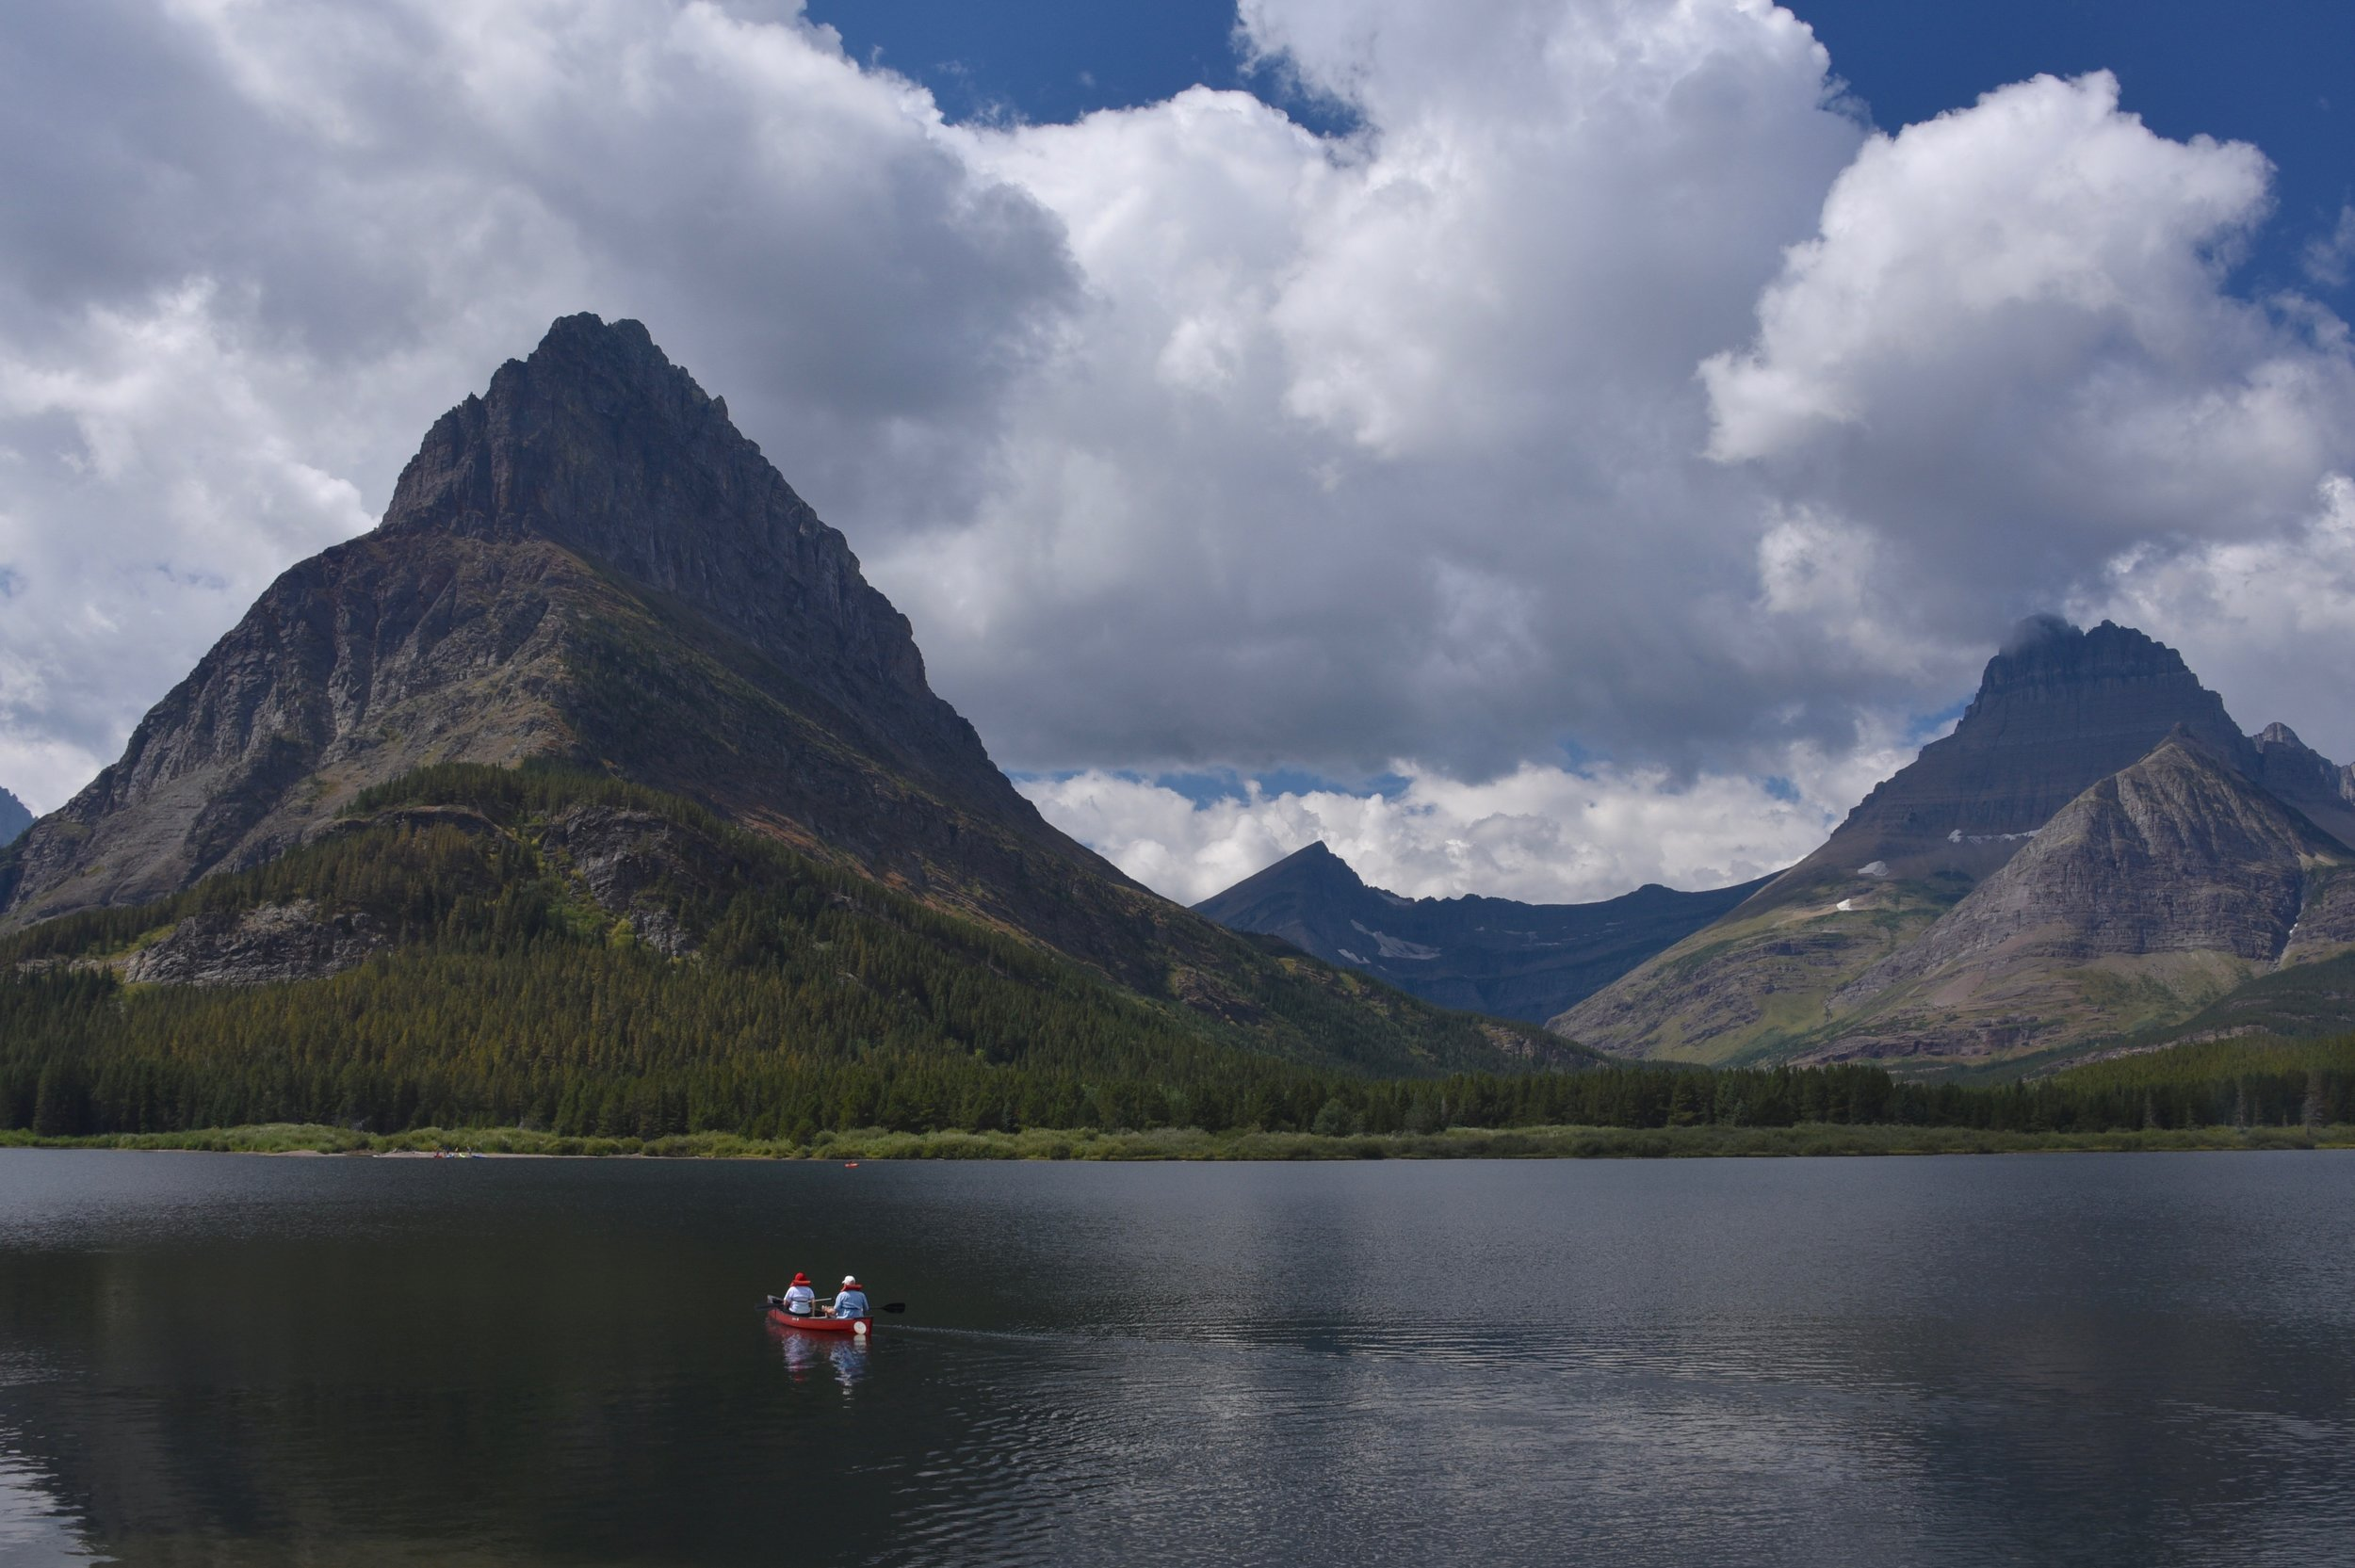 Paddlers on Swiftcurrent Lake